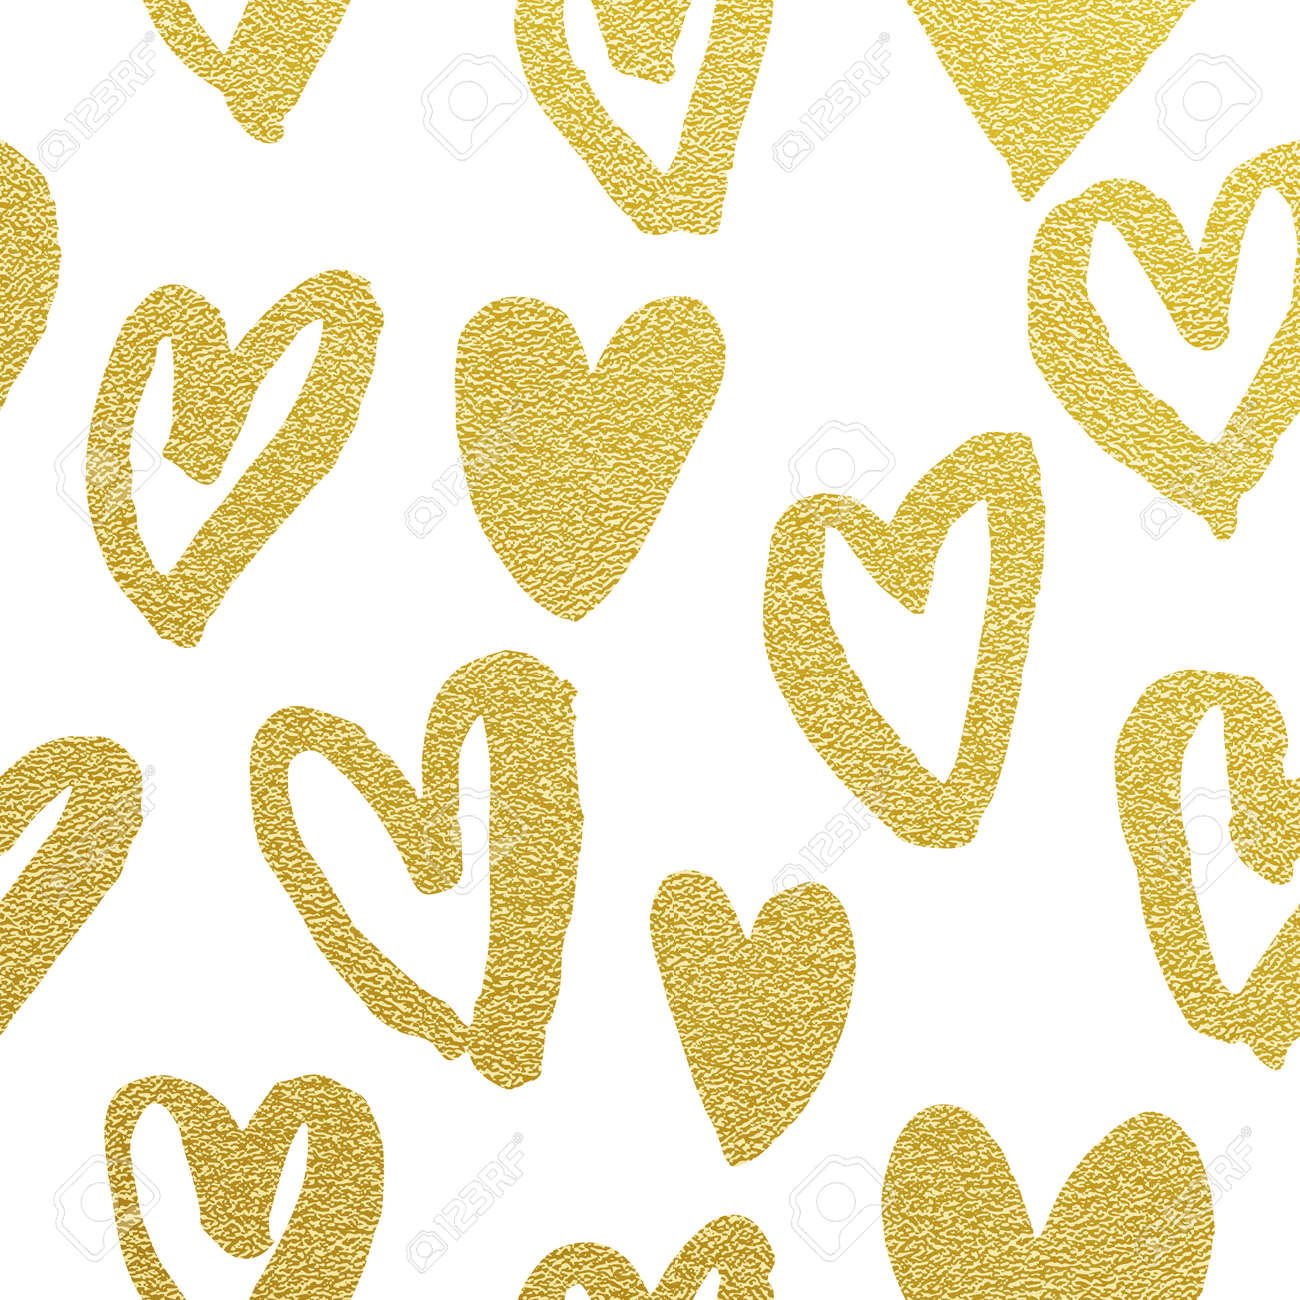 f6a5774824af Valentine Day golden glitter hearts pattern. White background gold  glittering foil heart icons. Seamless